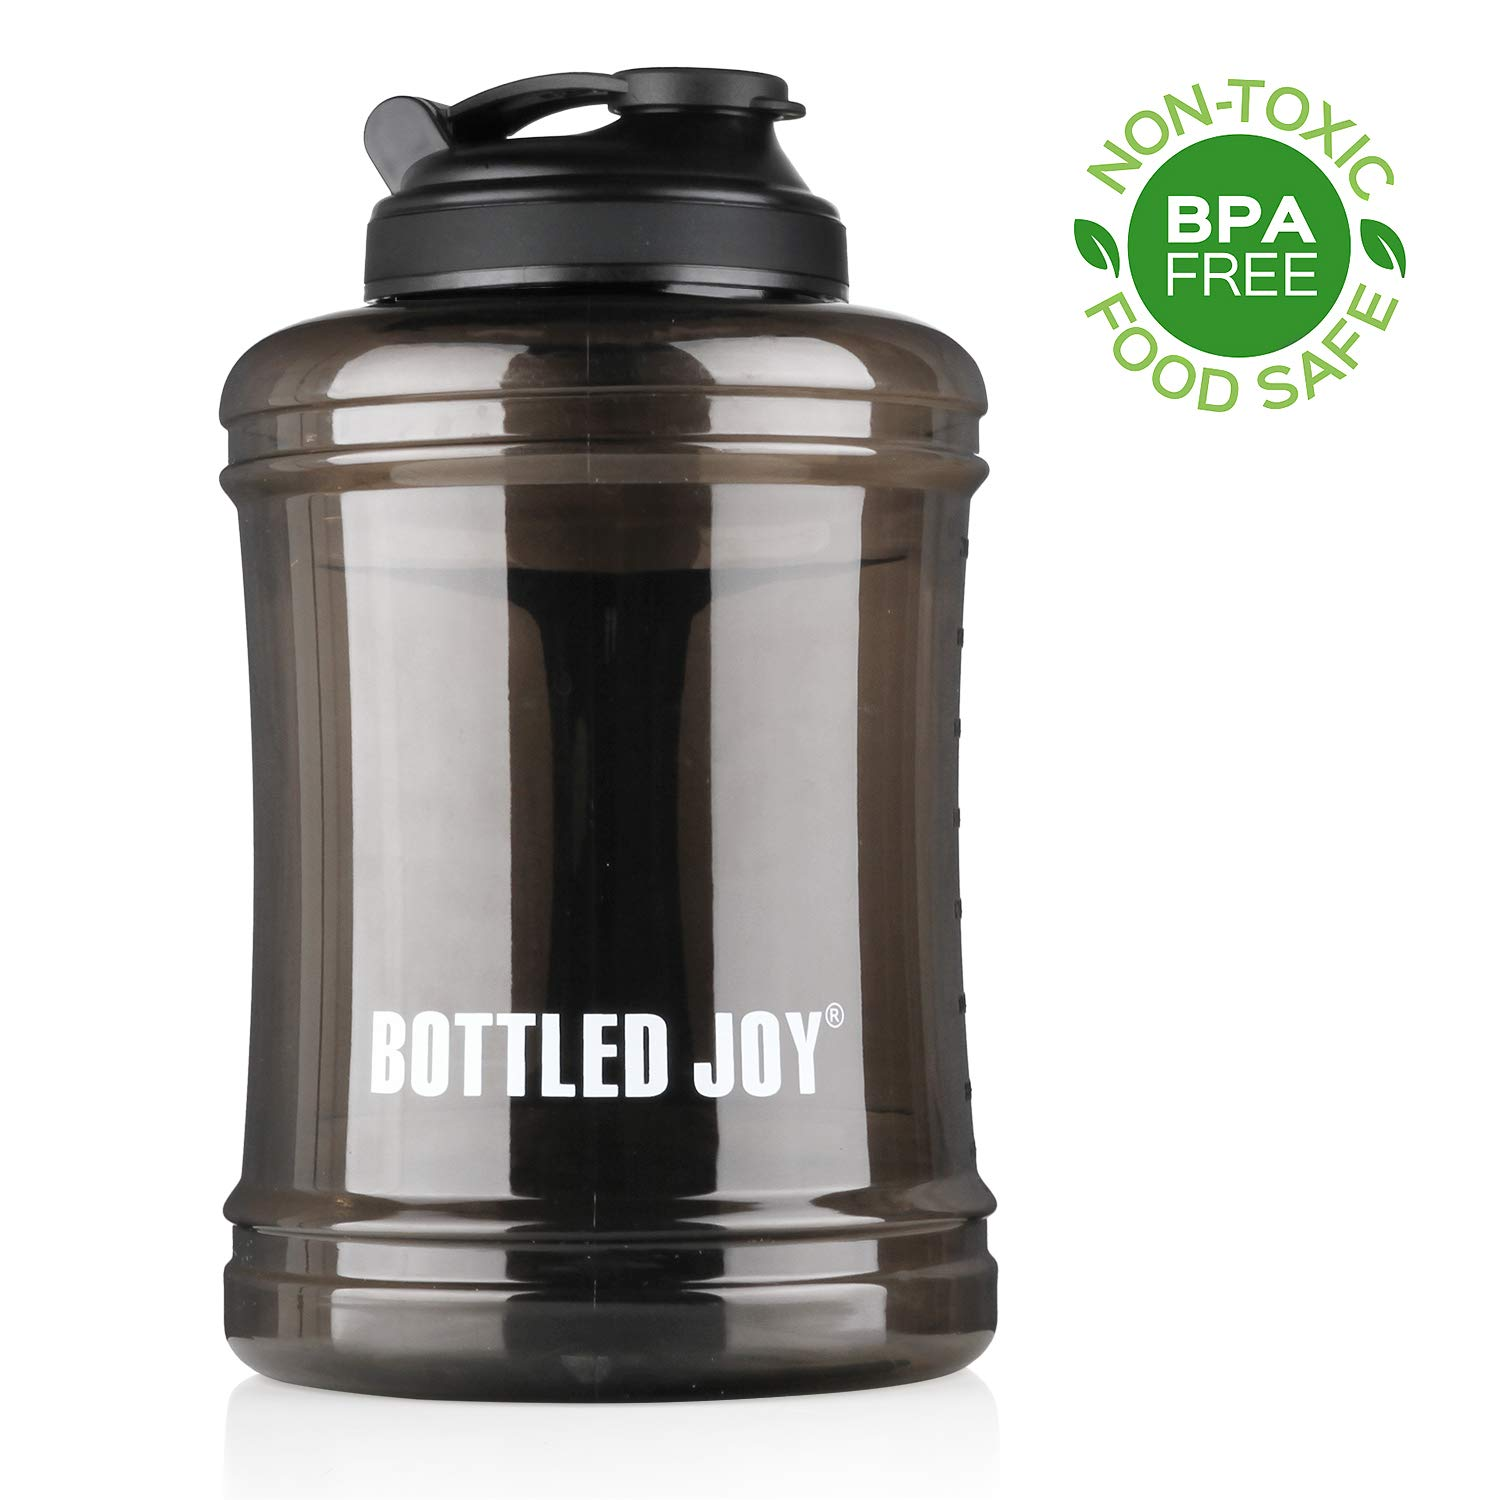 e47d8e3dcf Product name:BOTTLED JOY 2.5L Large Capacity Water Bottle with Handle,Sport  Large Water Bottle Gym Drinking,half Gallon Reusable BPA Free Water Bottle  83oz ...